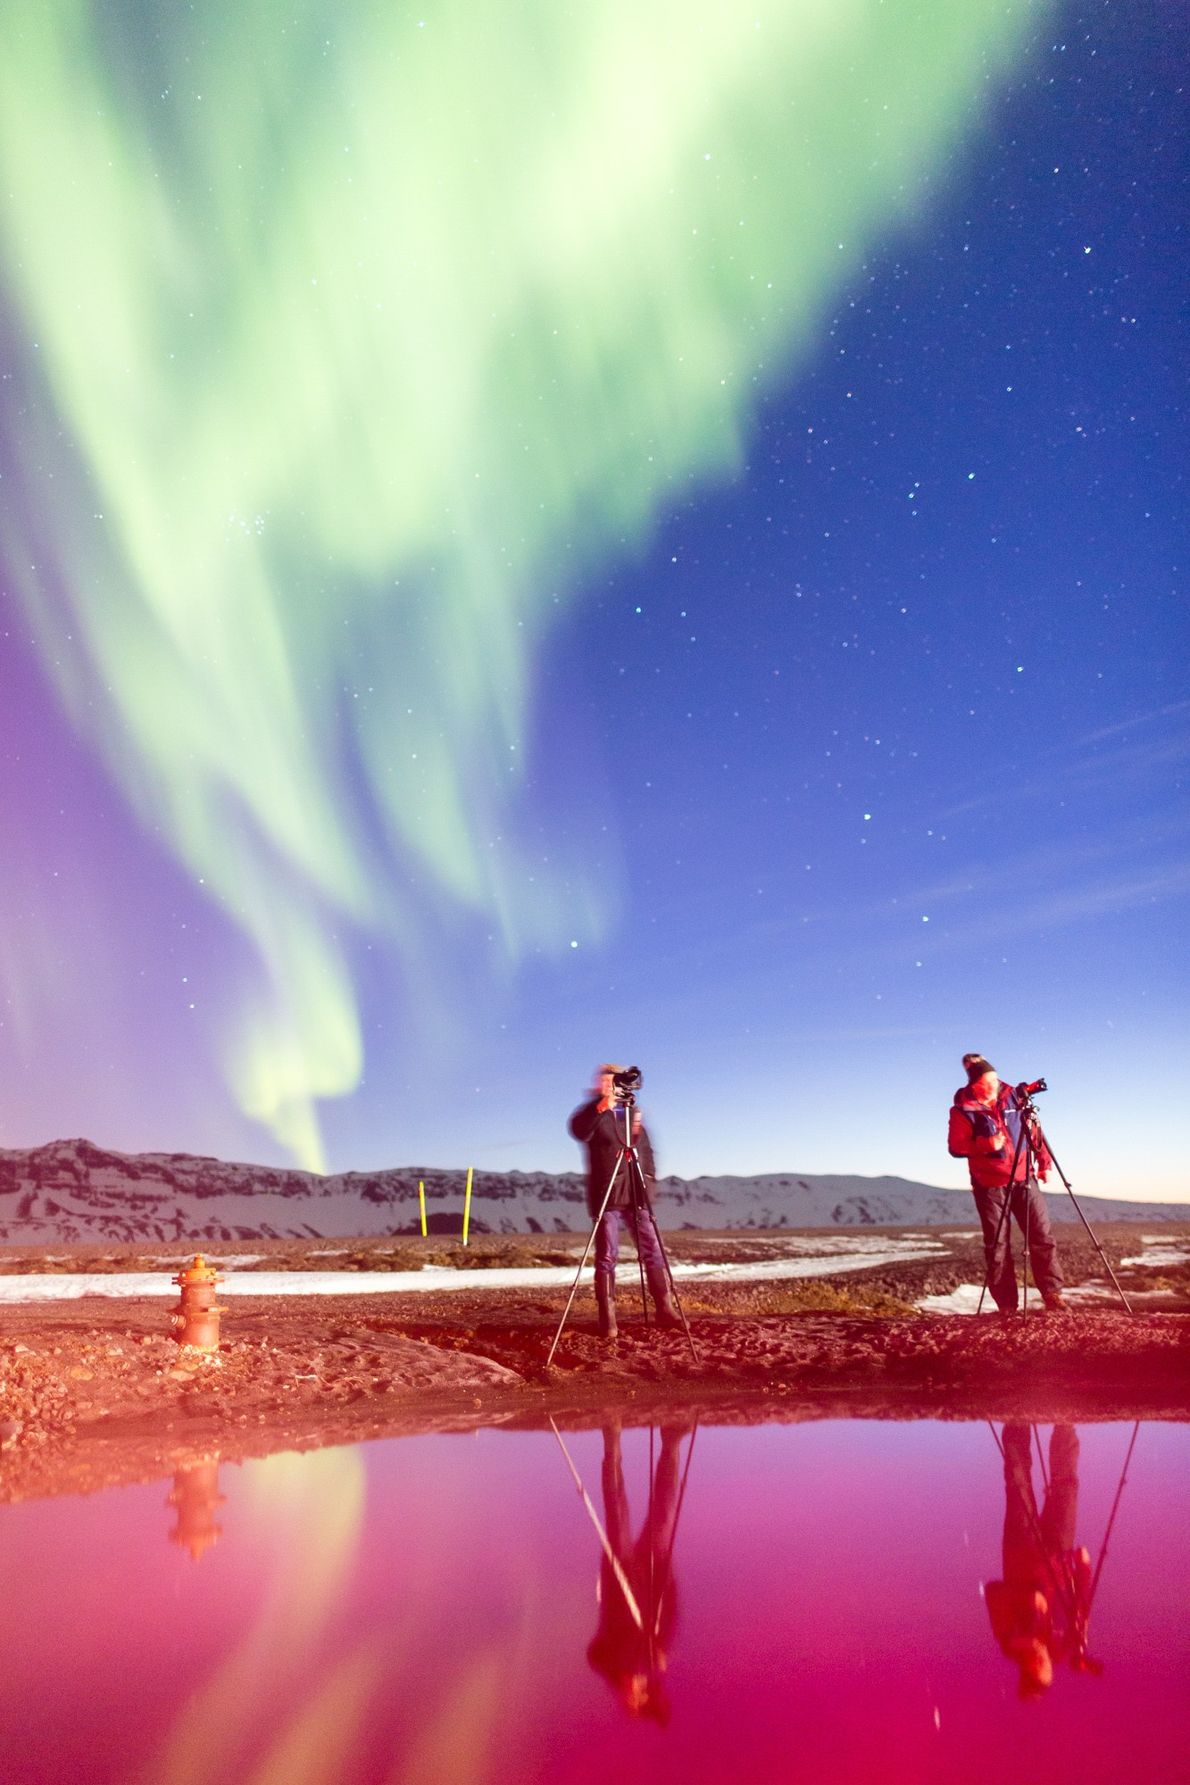 Aurora hunters by night, Gaukur Hjartarson is a civil engineer during the day, while his brother ...